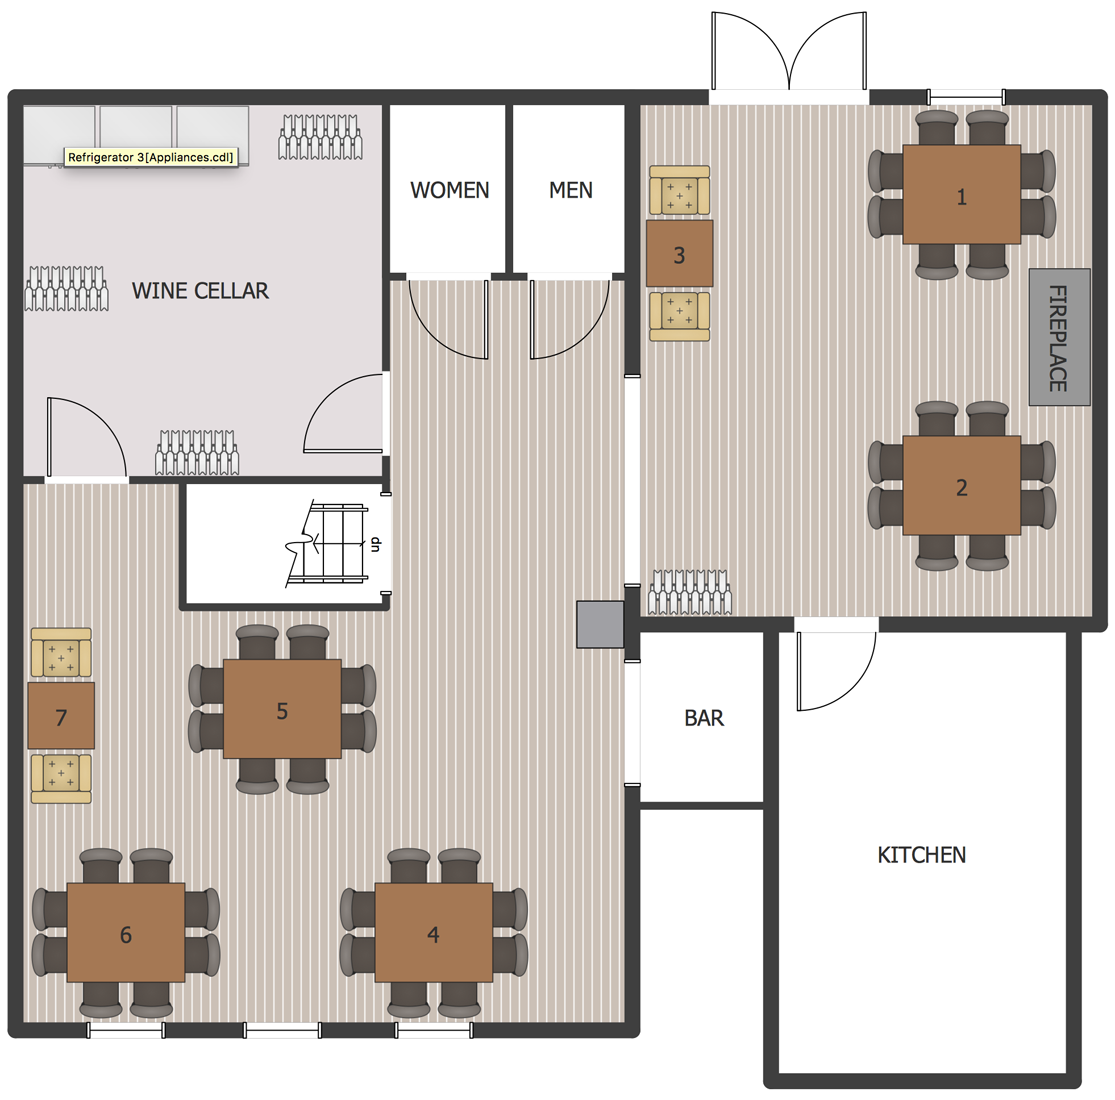 Wine Cellar Floor Plan